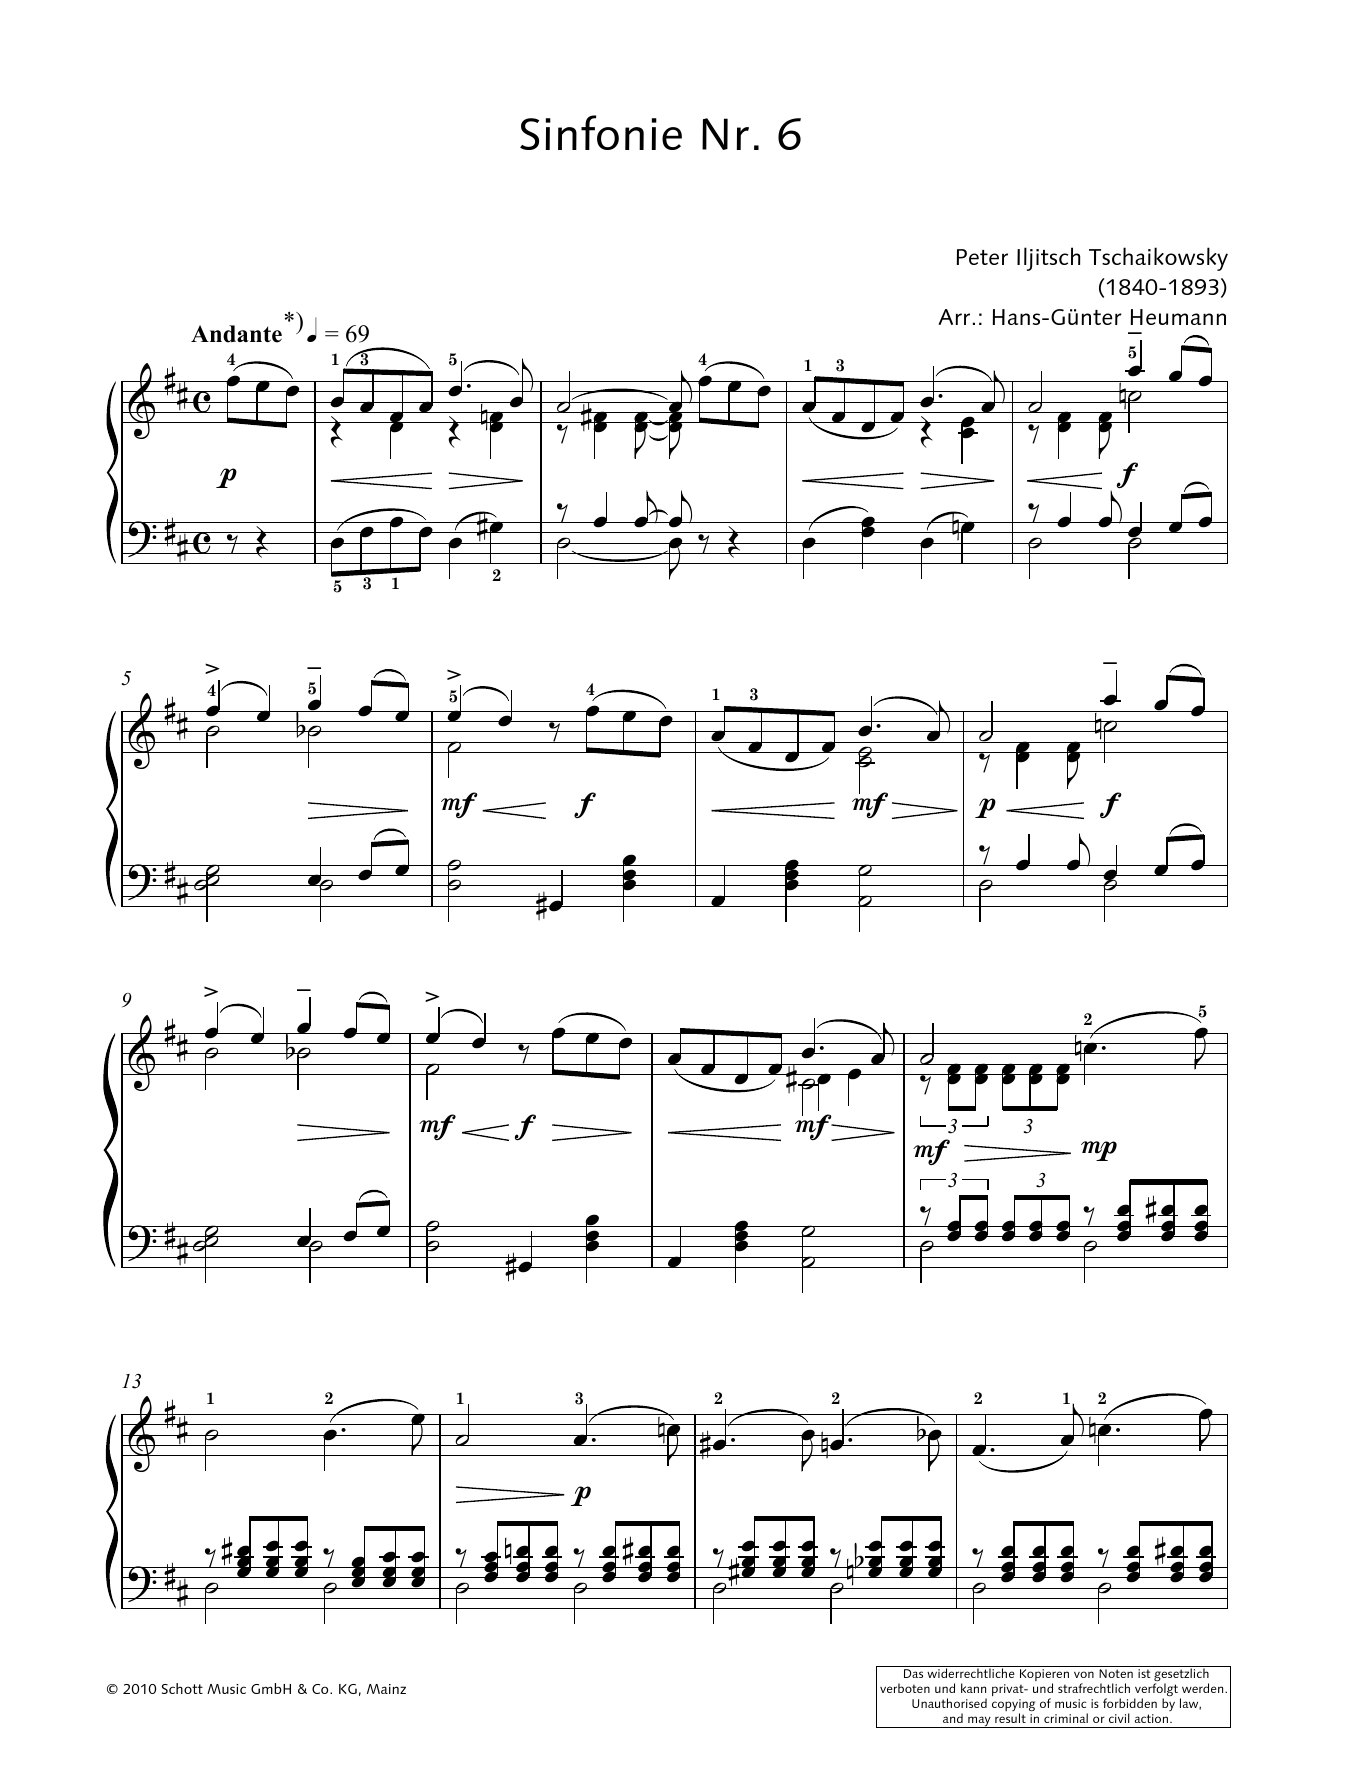 Symphony No. 6 in B minor Sheet Music